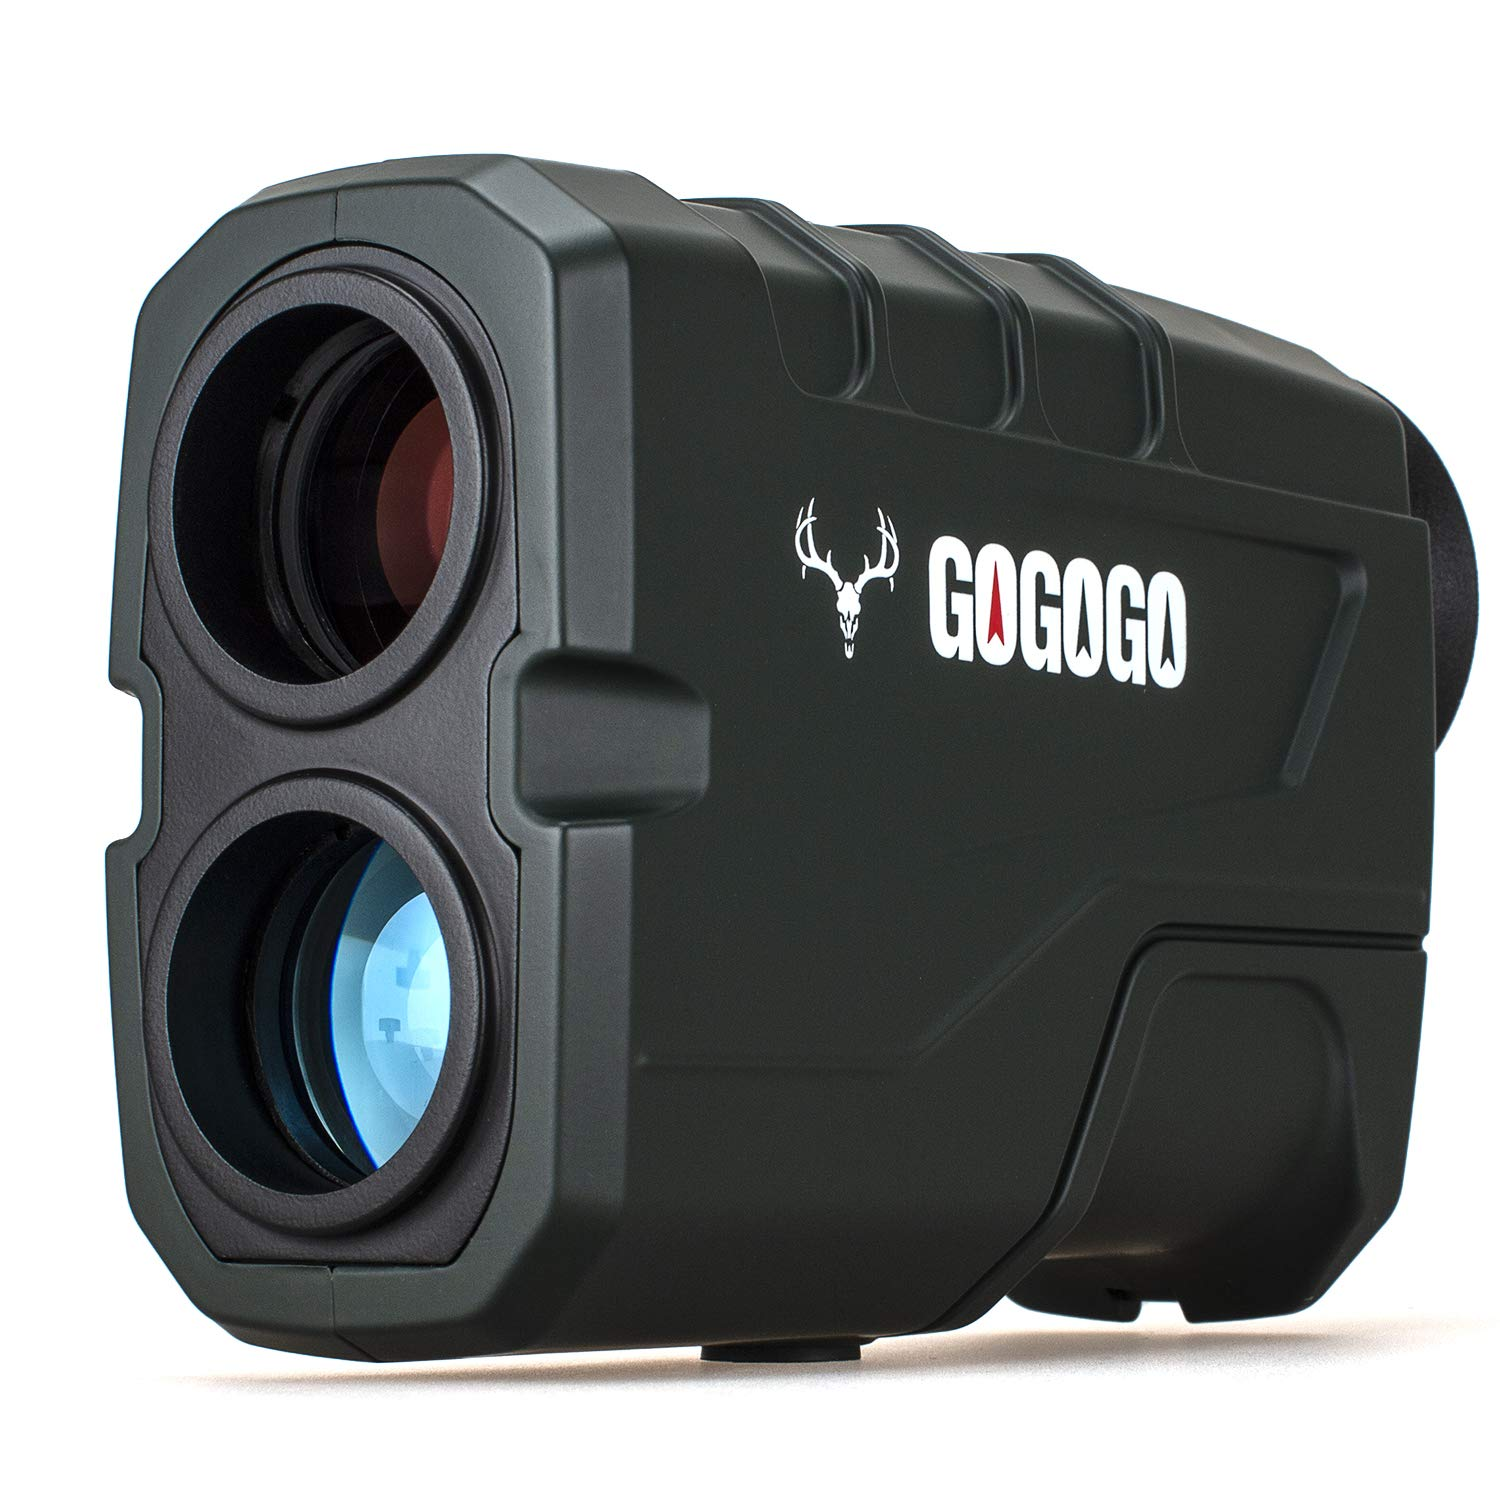 Gogogo Sport 1200 Yards Laser Range Finder, Hunting with Flagpole Lock - Ranging - Speed and Scan 6X Rangefinders with USB Cable by Gogogo Sport